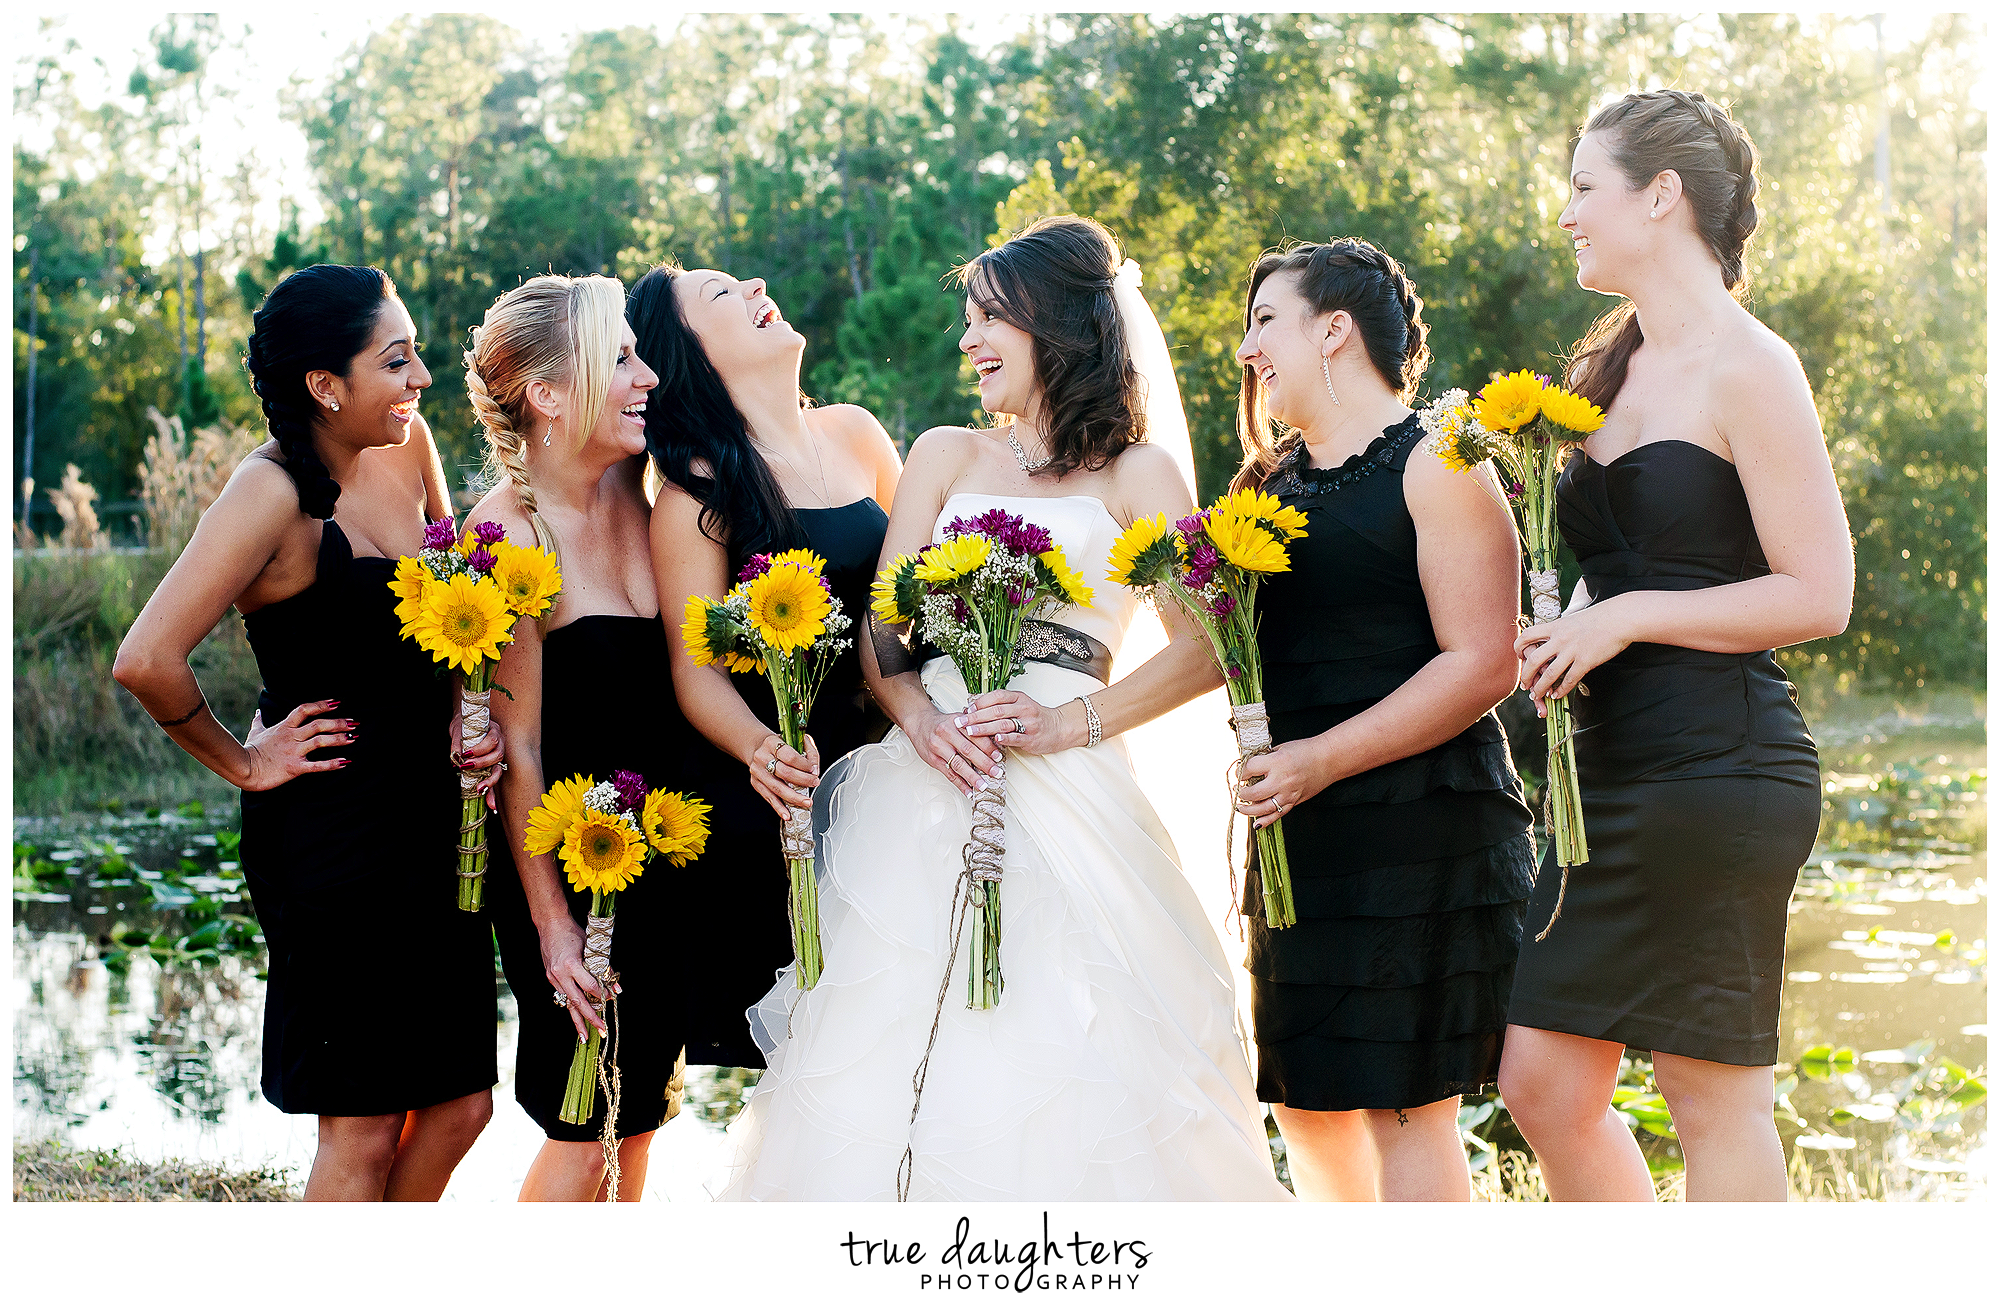 True_Daughters_Photography_Campitelli_Wedding-24.png